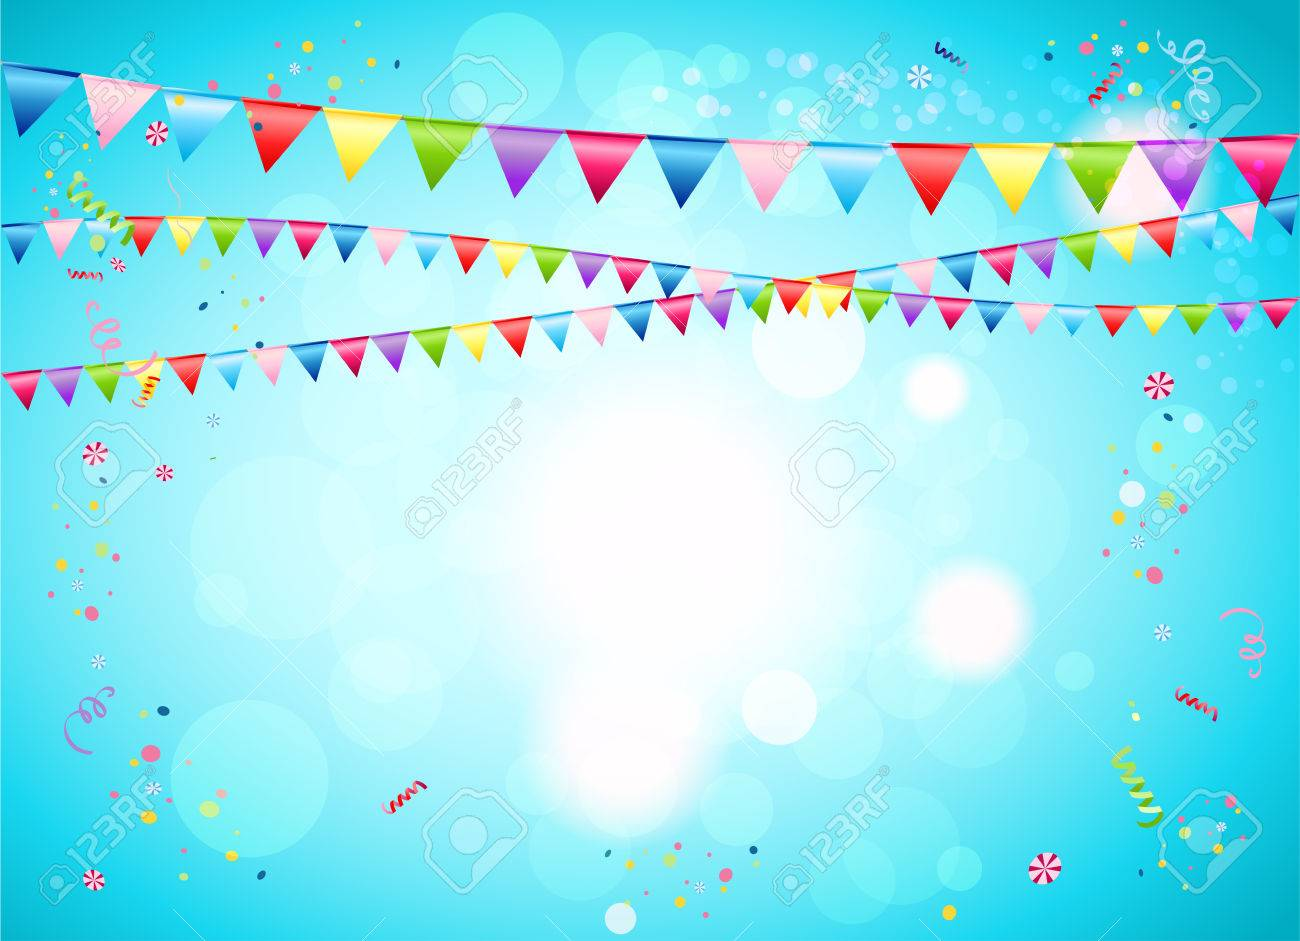 Festive background with flags for advertising, cards, invitation and so on. - 46572687